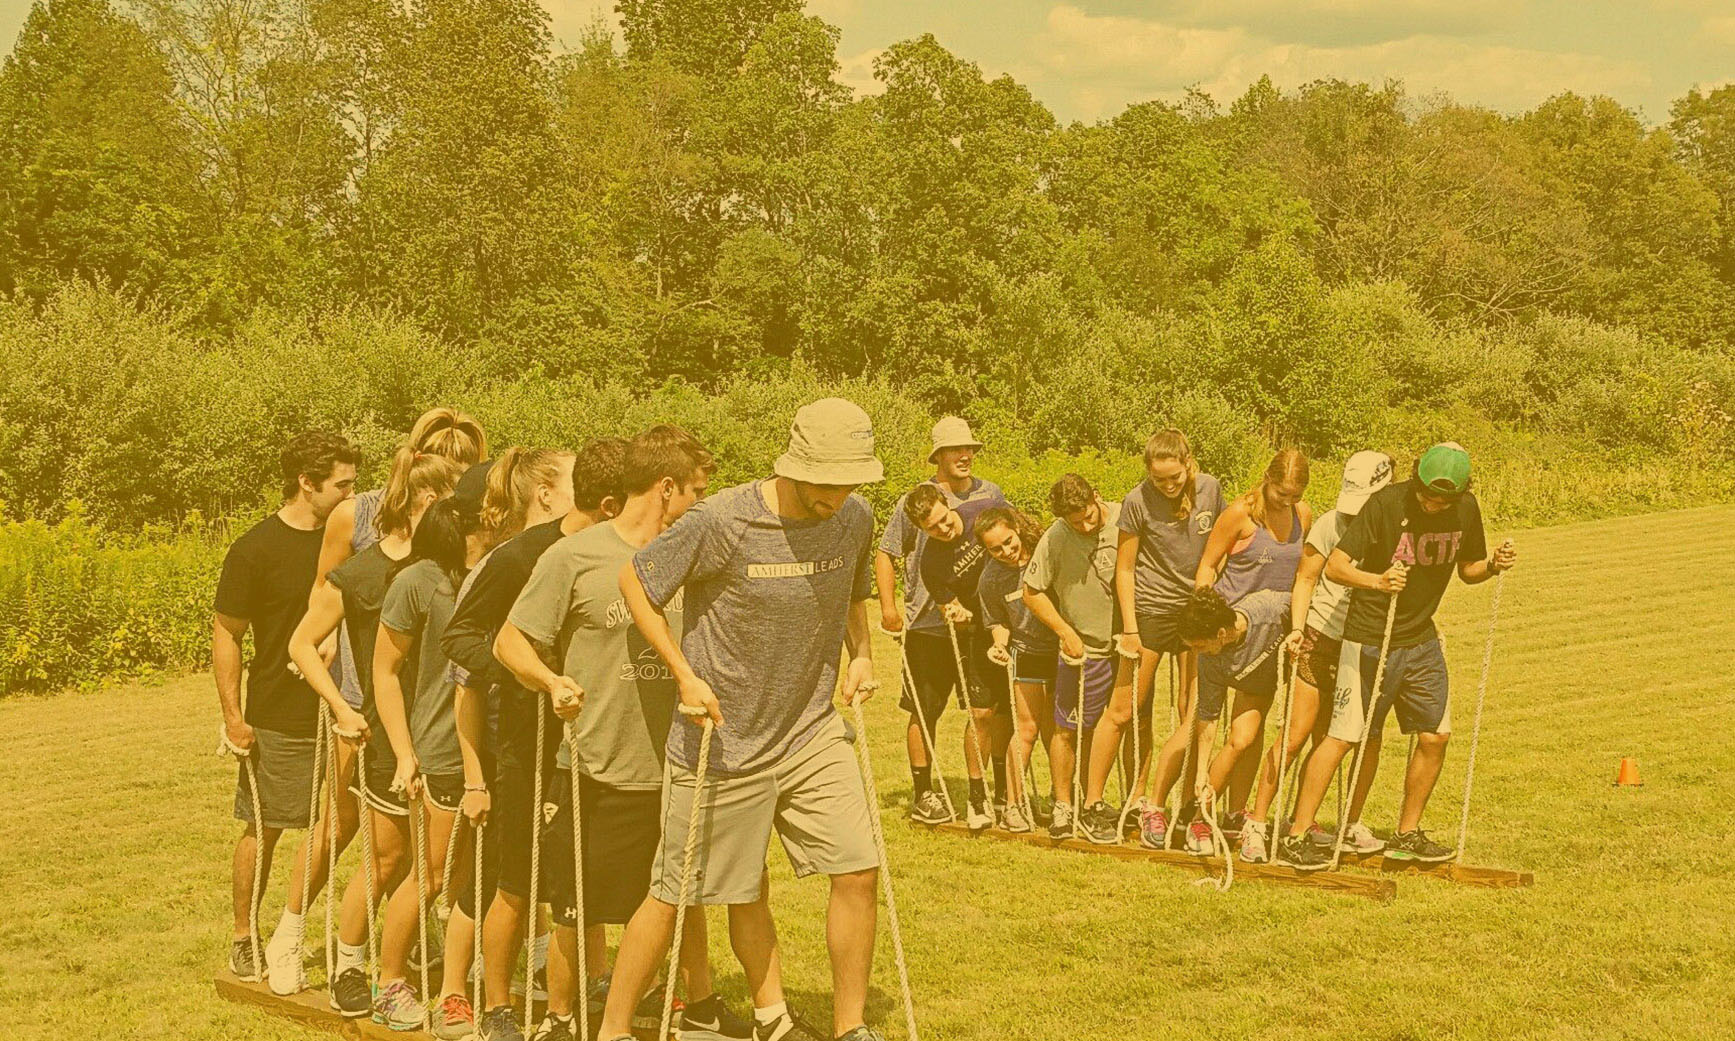 How Team Building Activities Can Form New Friendships